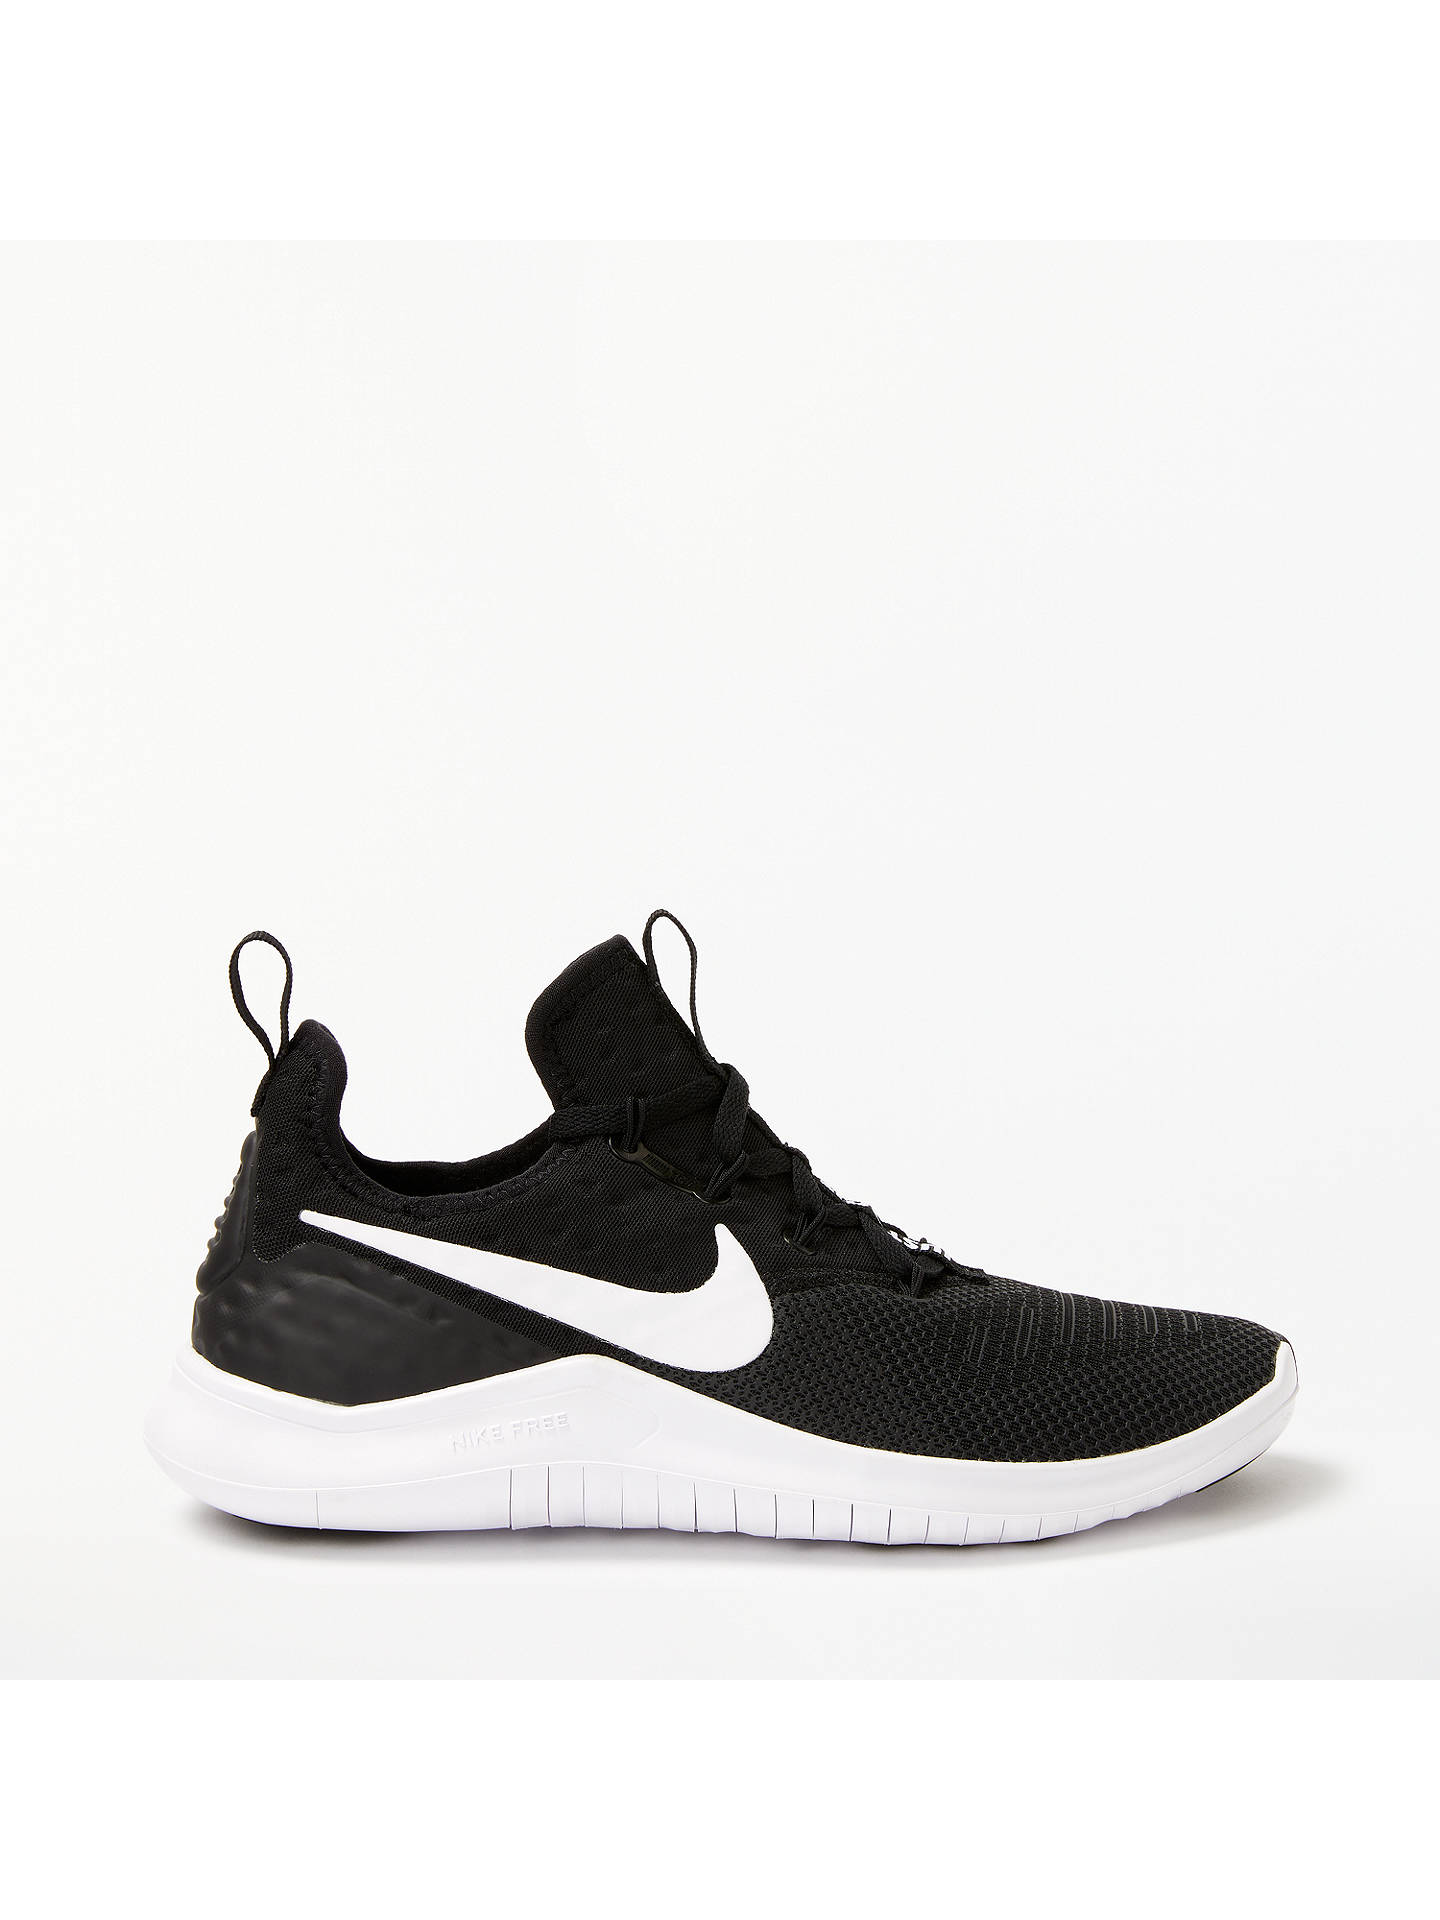 20306ca6b5e2 Buy Nike Free TR 8 Women s Training Shoes